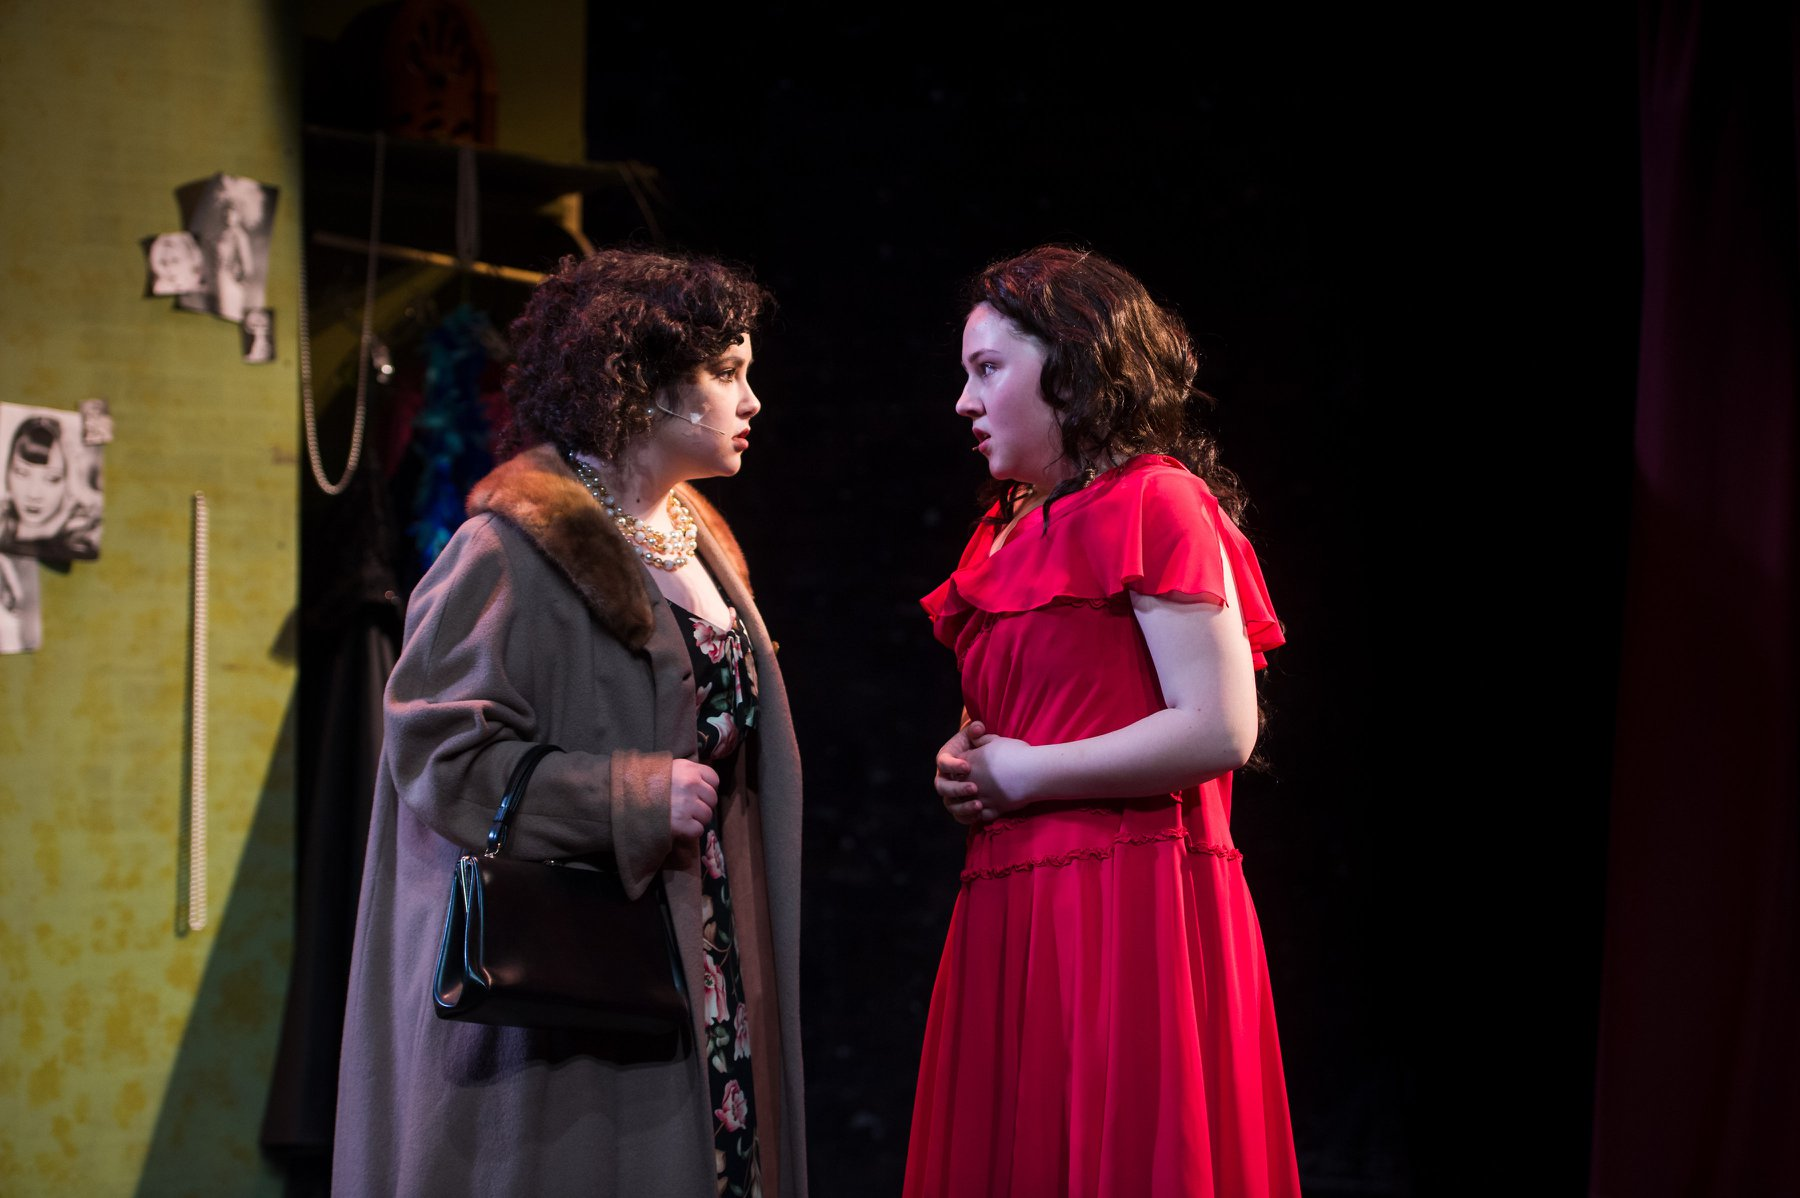 Chloe Friedman and Meghan Carey in Gypsy, A Musical Fable. Photo by Lock & Company.